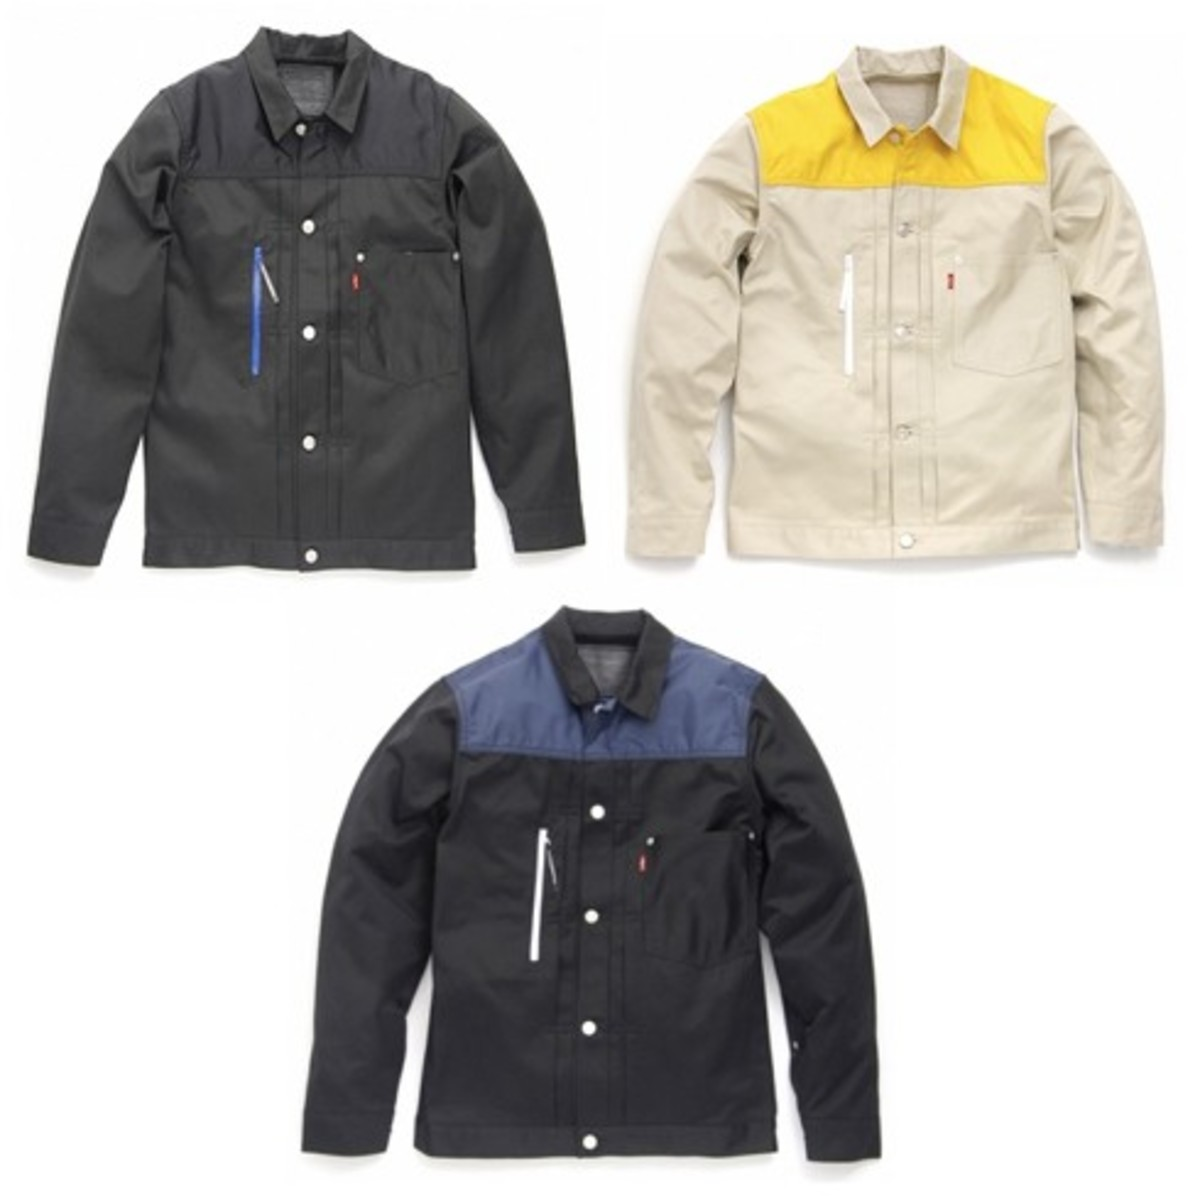 Levi's Fenom - Chino Trucker Jacket Customize